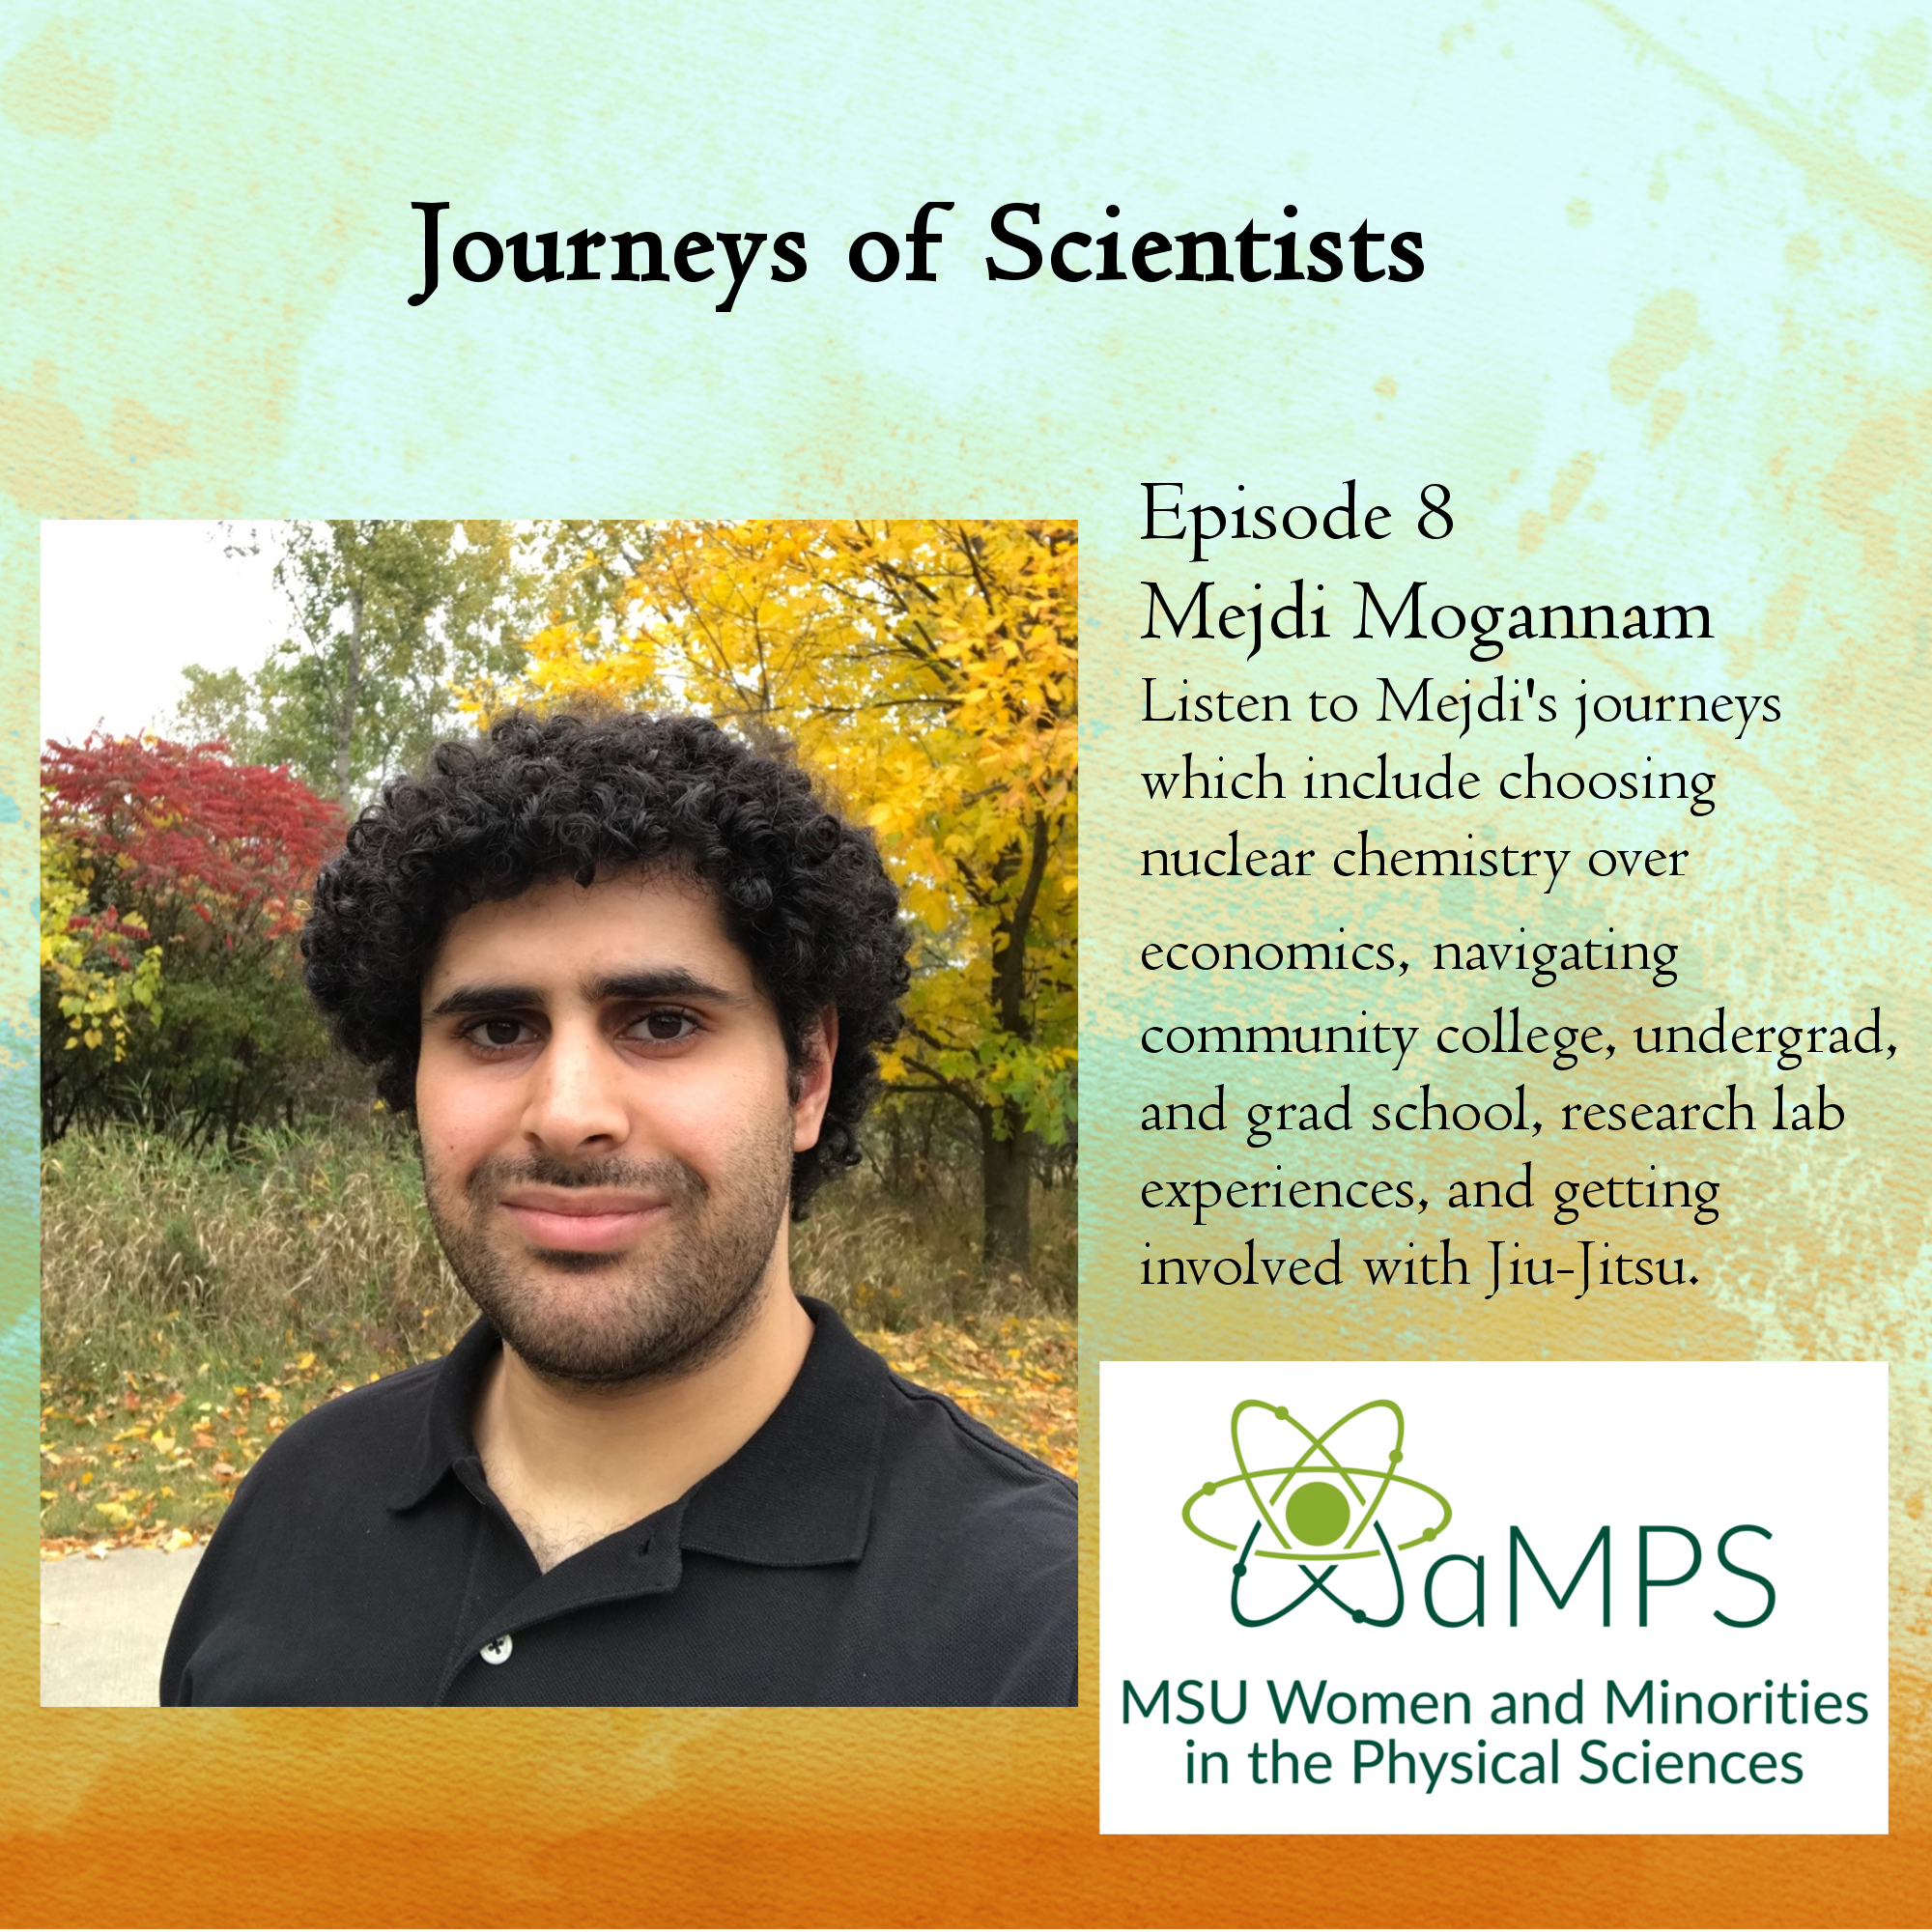 Mejdi is a second year graduate student in the Chemistry department at MSU. He does nuclear chemistry in the NSCL/FRIB, blurring the lines of chemistry and physics. His work currently involves using the technique of Total Absorption Spectroscopy (TAS) to study how excited states in 73Ni are populated from the beta decay of 73Co. Listen to Mejdi's journeys which include choosing nuclear chemistry over economics, navigating community college, undergrad, and grad school, research lab experiences, and getting involved with Jiu-Jitsu.